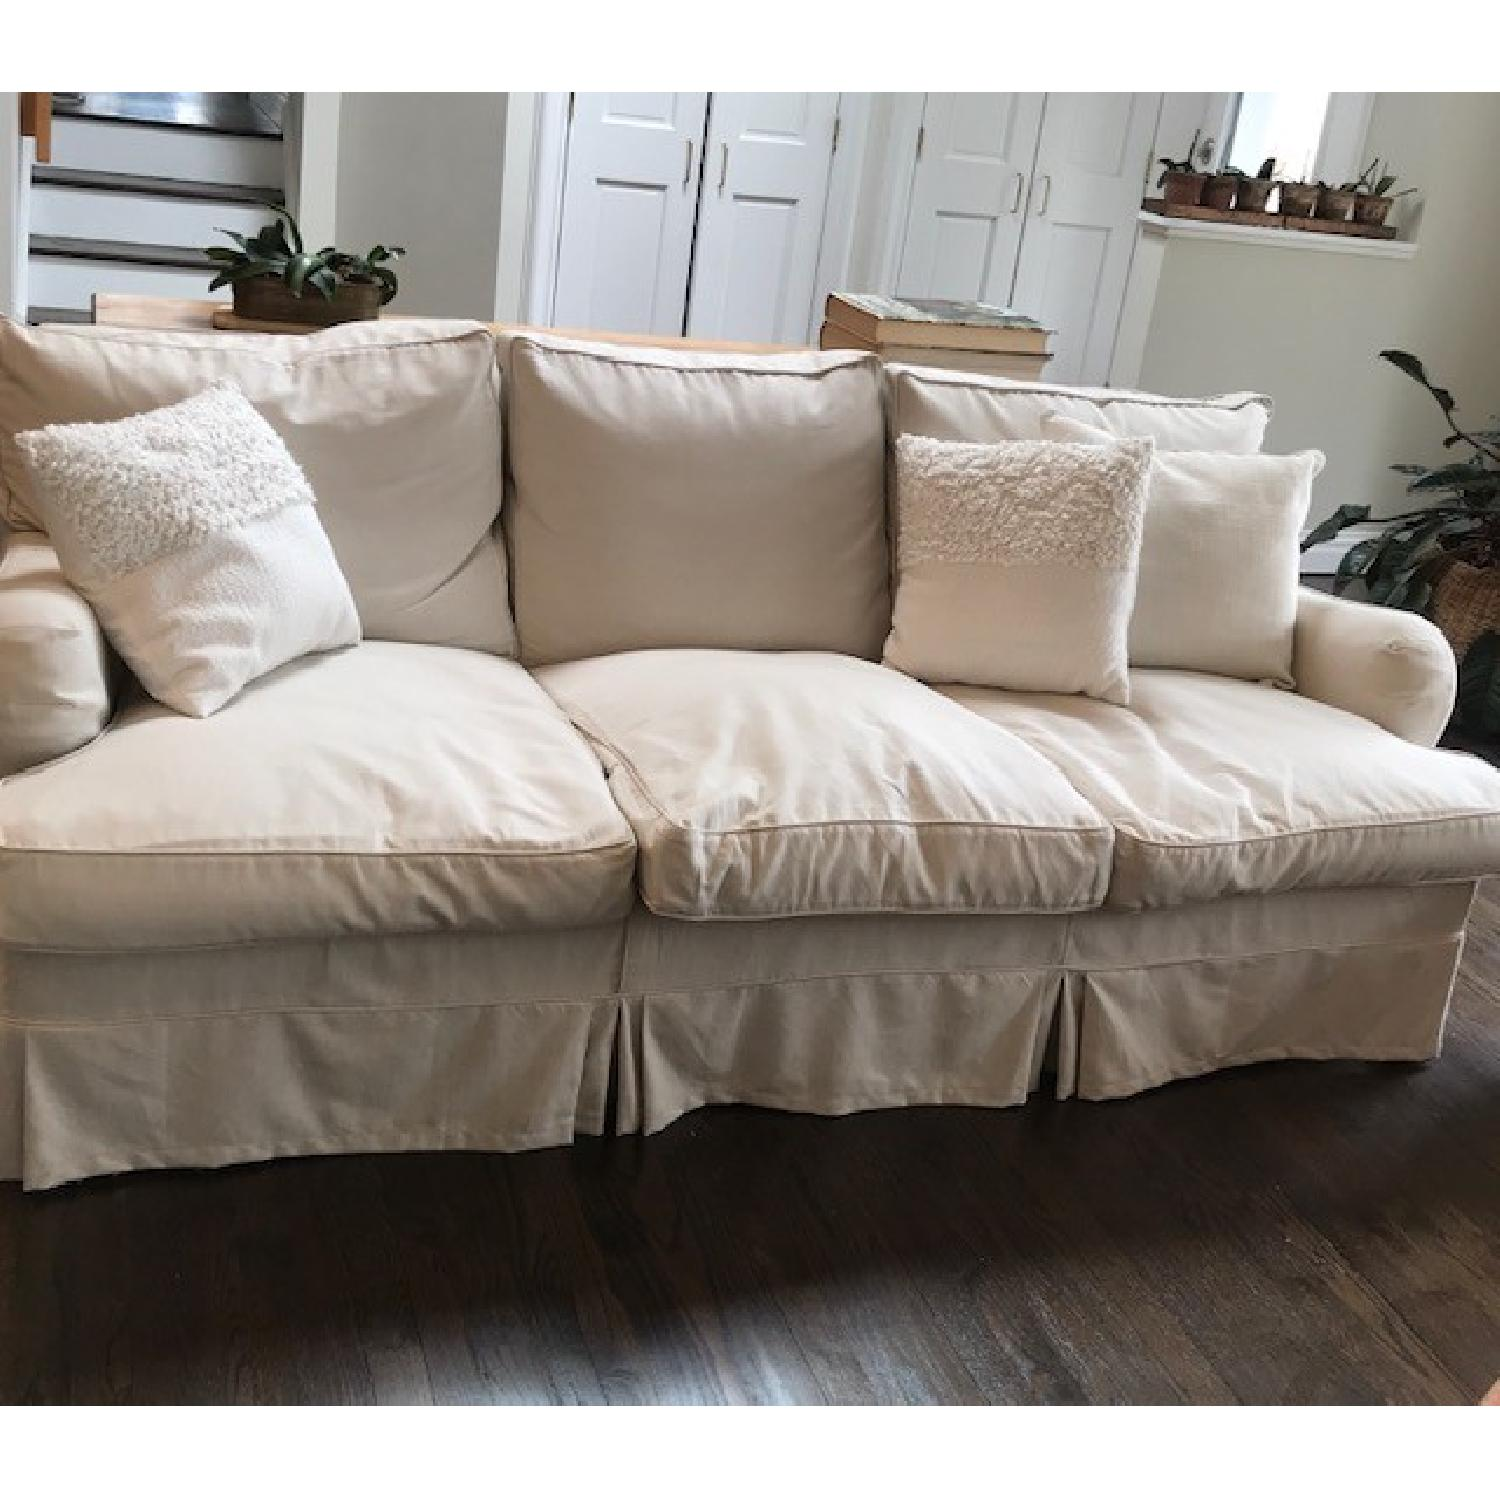 George Smith 3 Seater Slipcovered Sofa-0